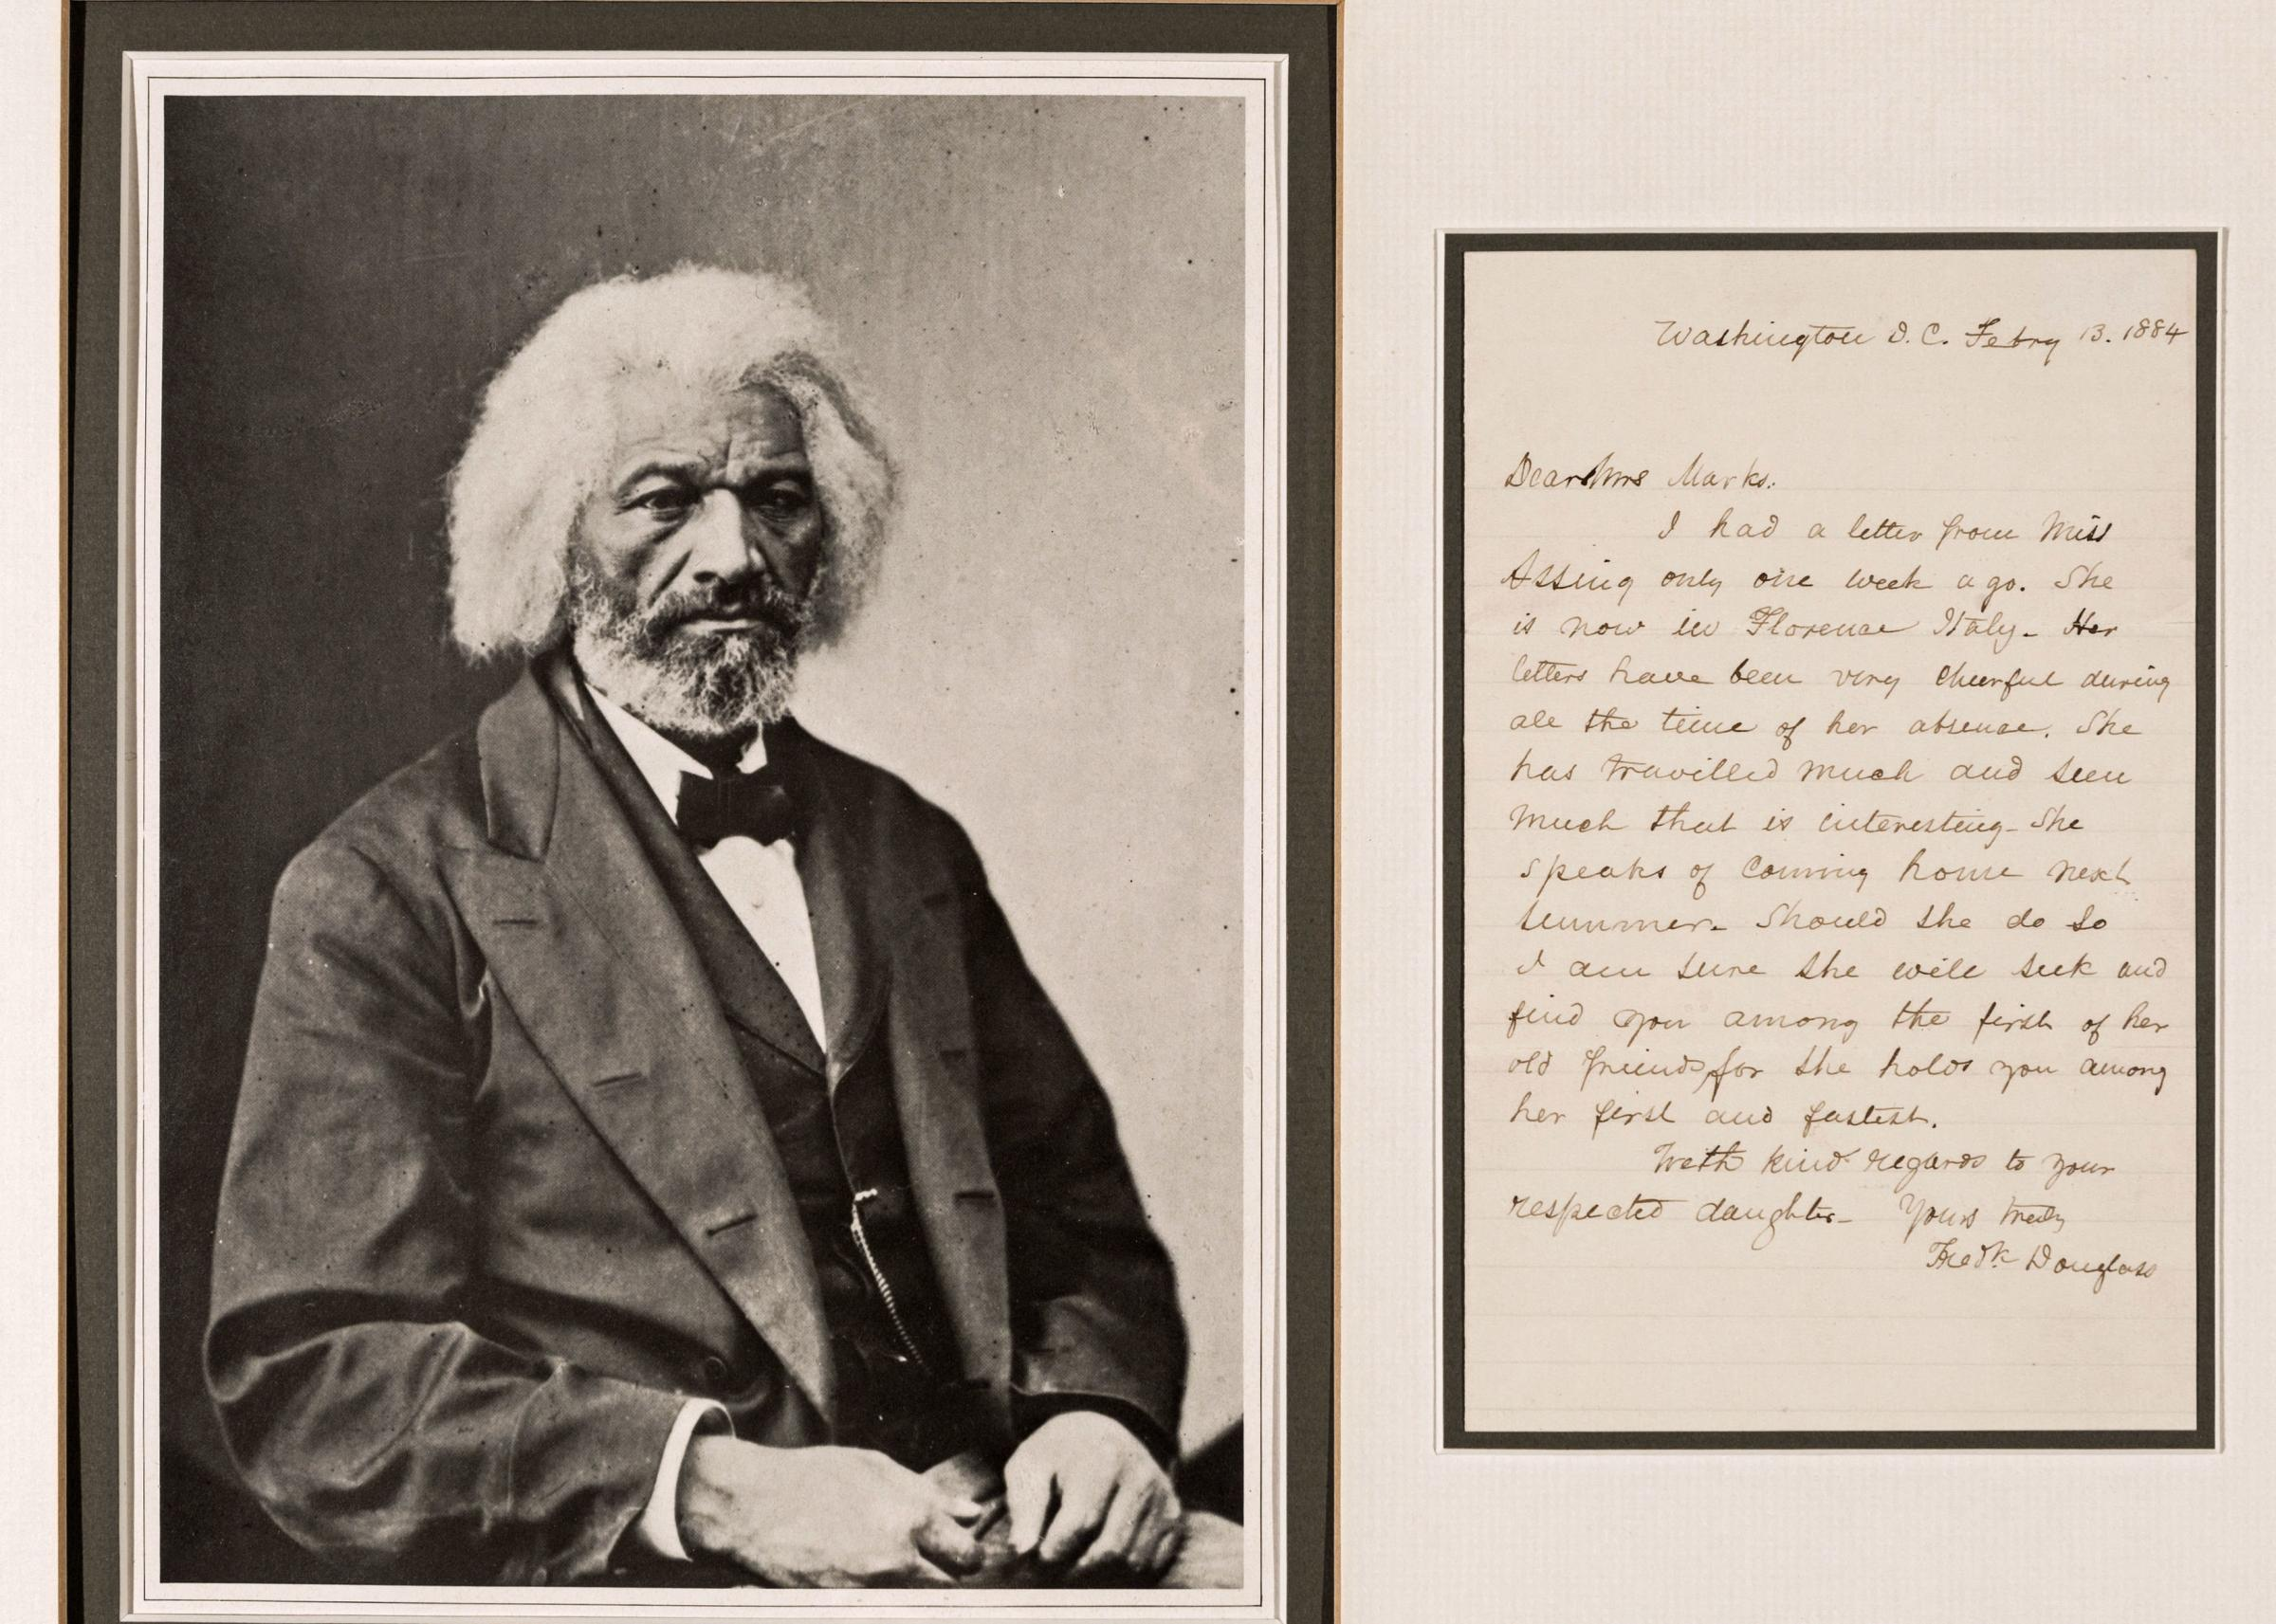 Never before seen items from Frederick Douglass' family collection will be on display